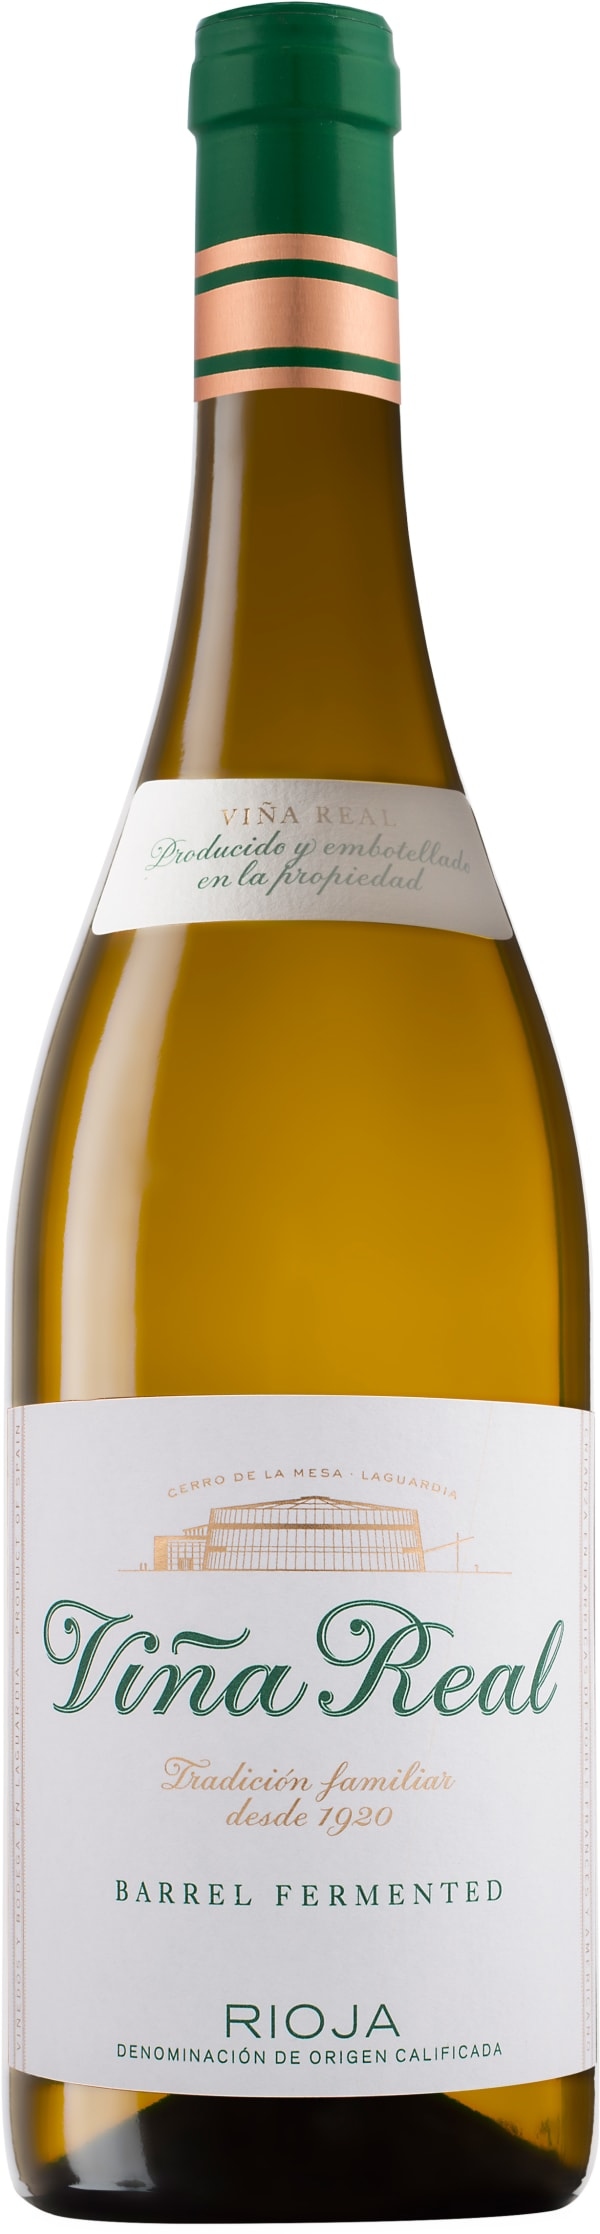 Viña Real Barrel Fermented Blanco 2017